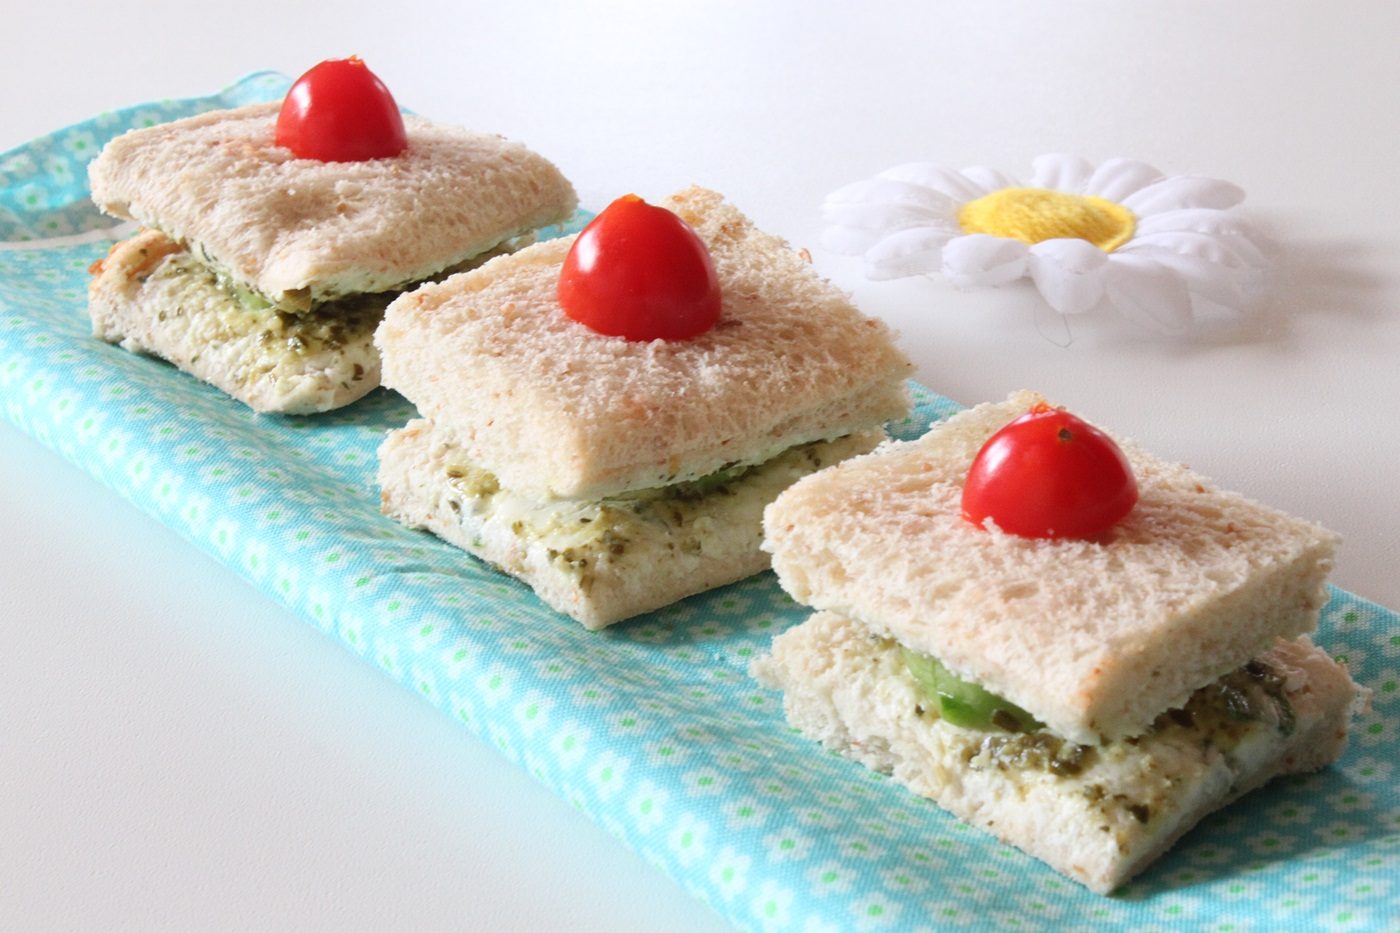 Dec 11,  · Confetti Veggie Tea Sandwich: This is a great way to slip some secret veggies into your kids sandwiches. Simply shred some colorful veggies, like carrots, celery, peppers, radishes or cucumber. Simply shred some colorful veggies, like carrots, celery, peppers, radishes or cucumber/5(9).